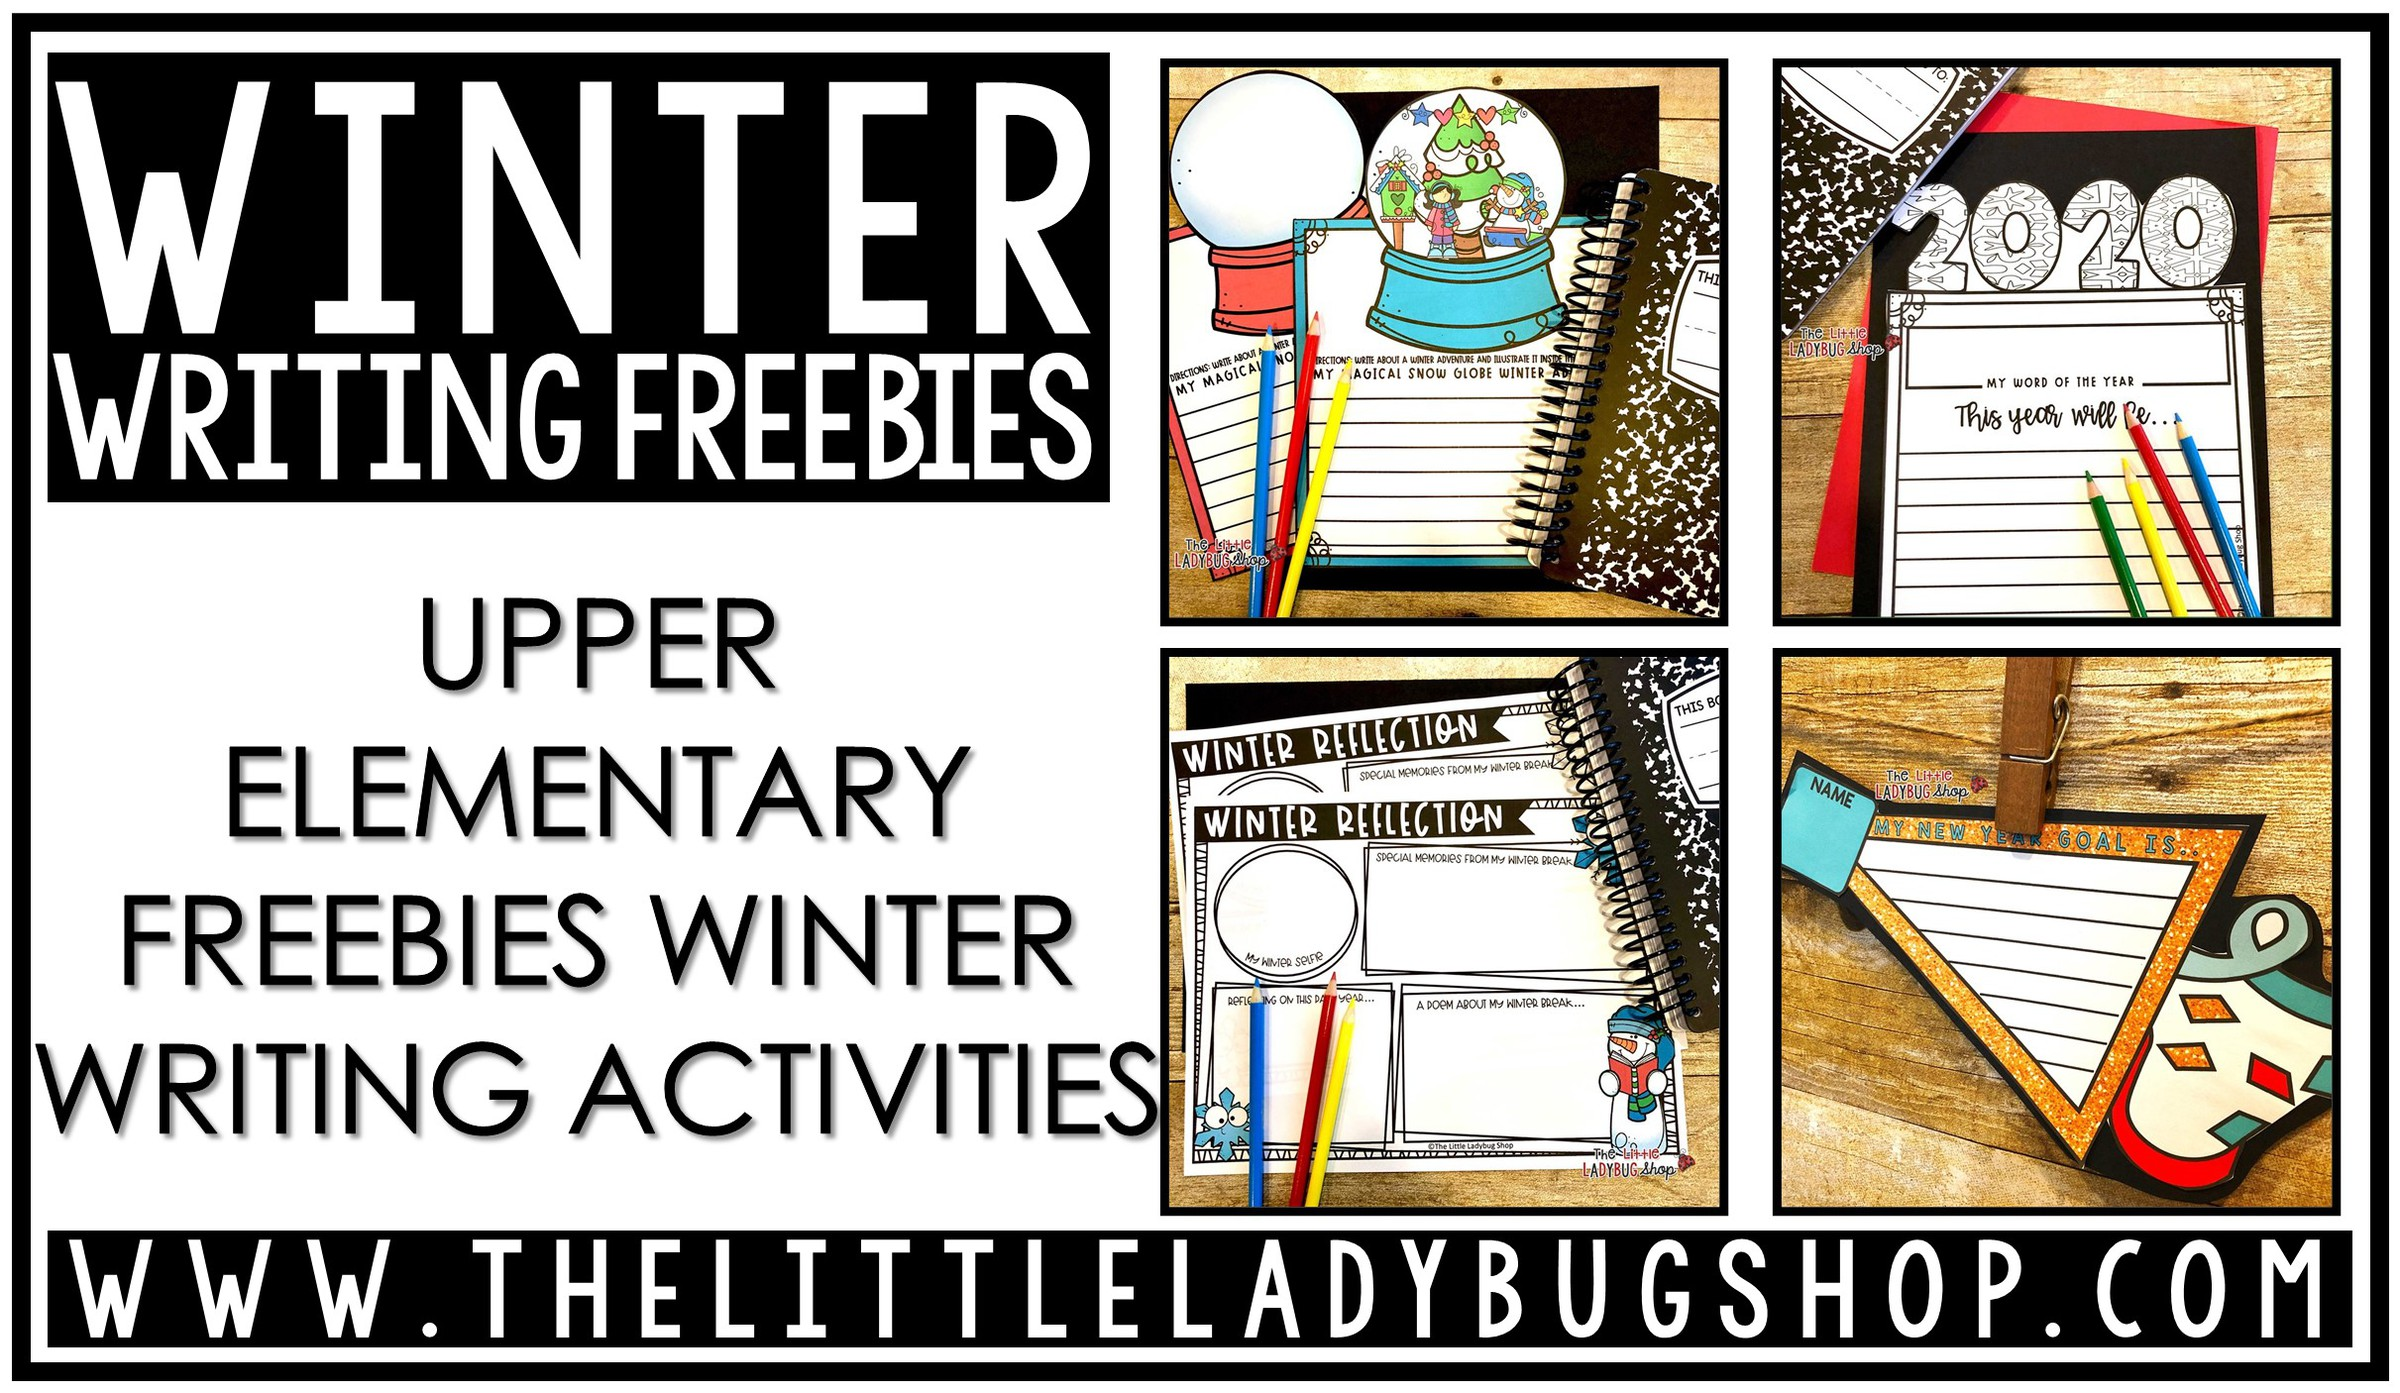 Winter Writing Freebies for Upper Elementary